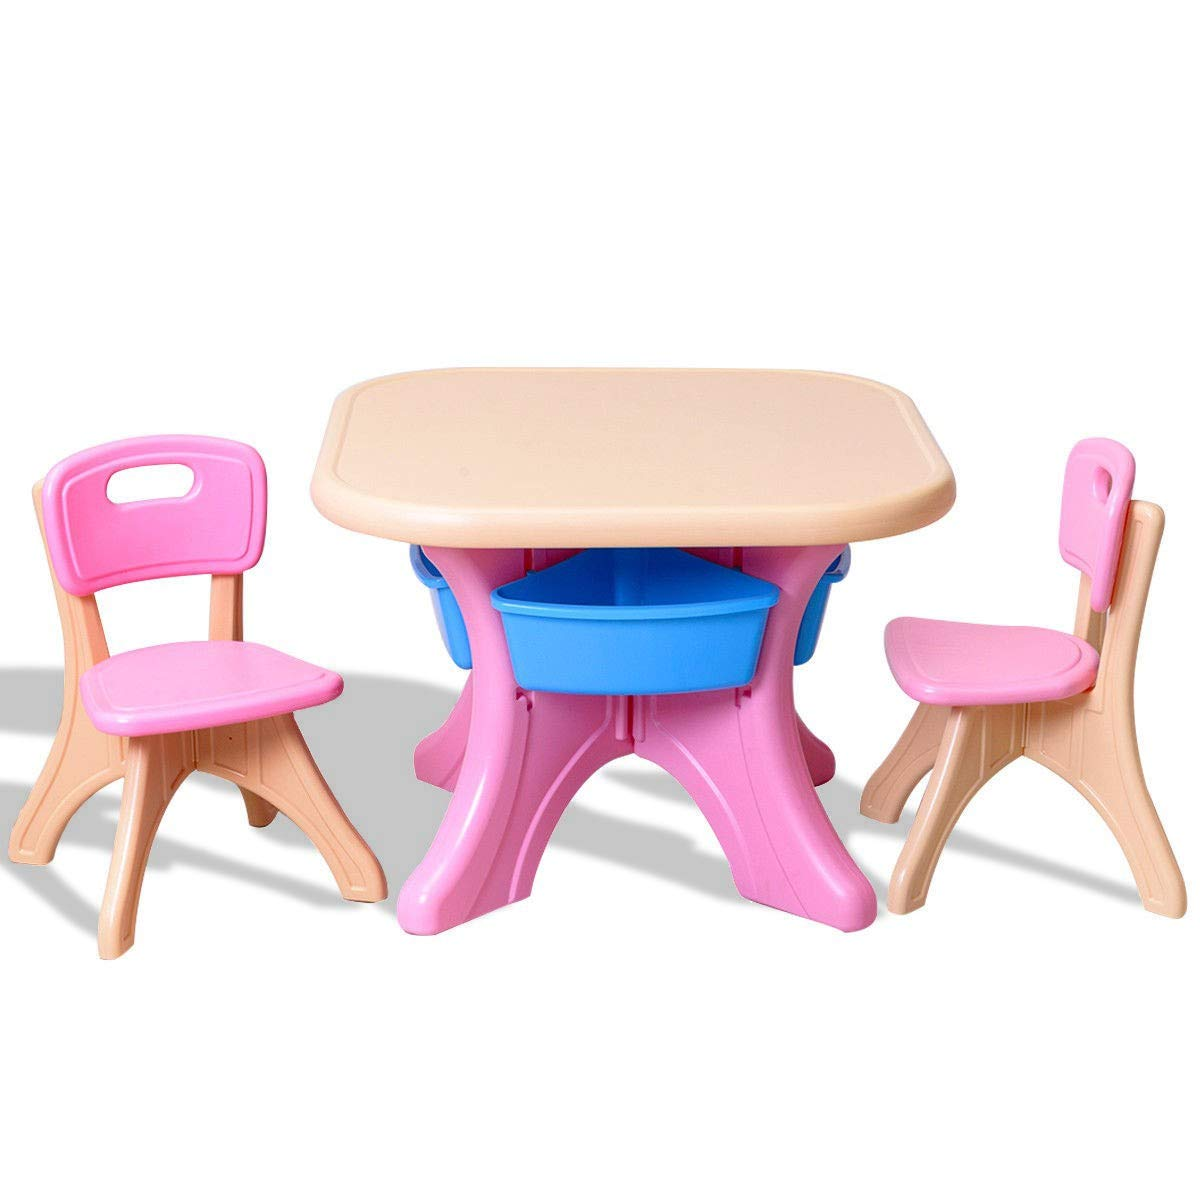 King77777 Practical and Comfort in/Outdoor 3-Piece Plastic Children Play Table & Chair Set Durable Construction Simple Design by King77777